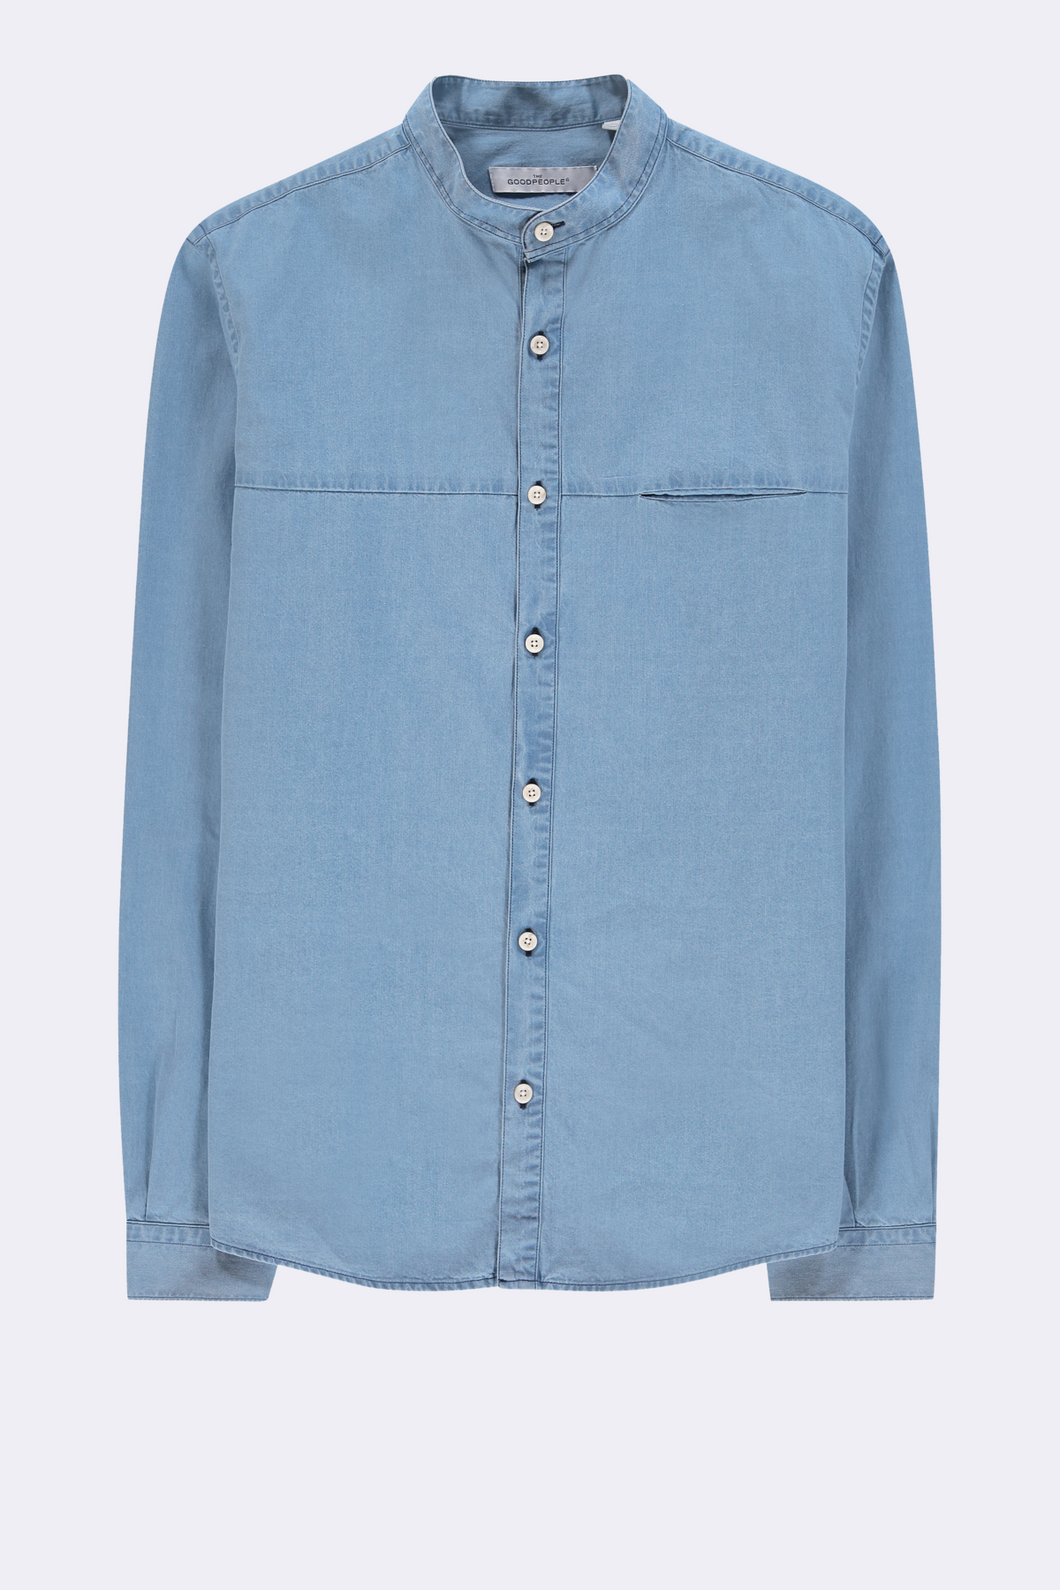 GOOD PEOPLE Mao Cotton Shirt - DENIM BLUE